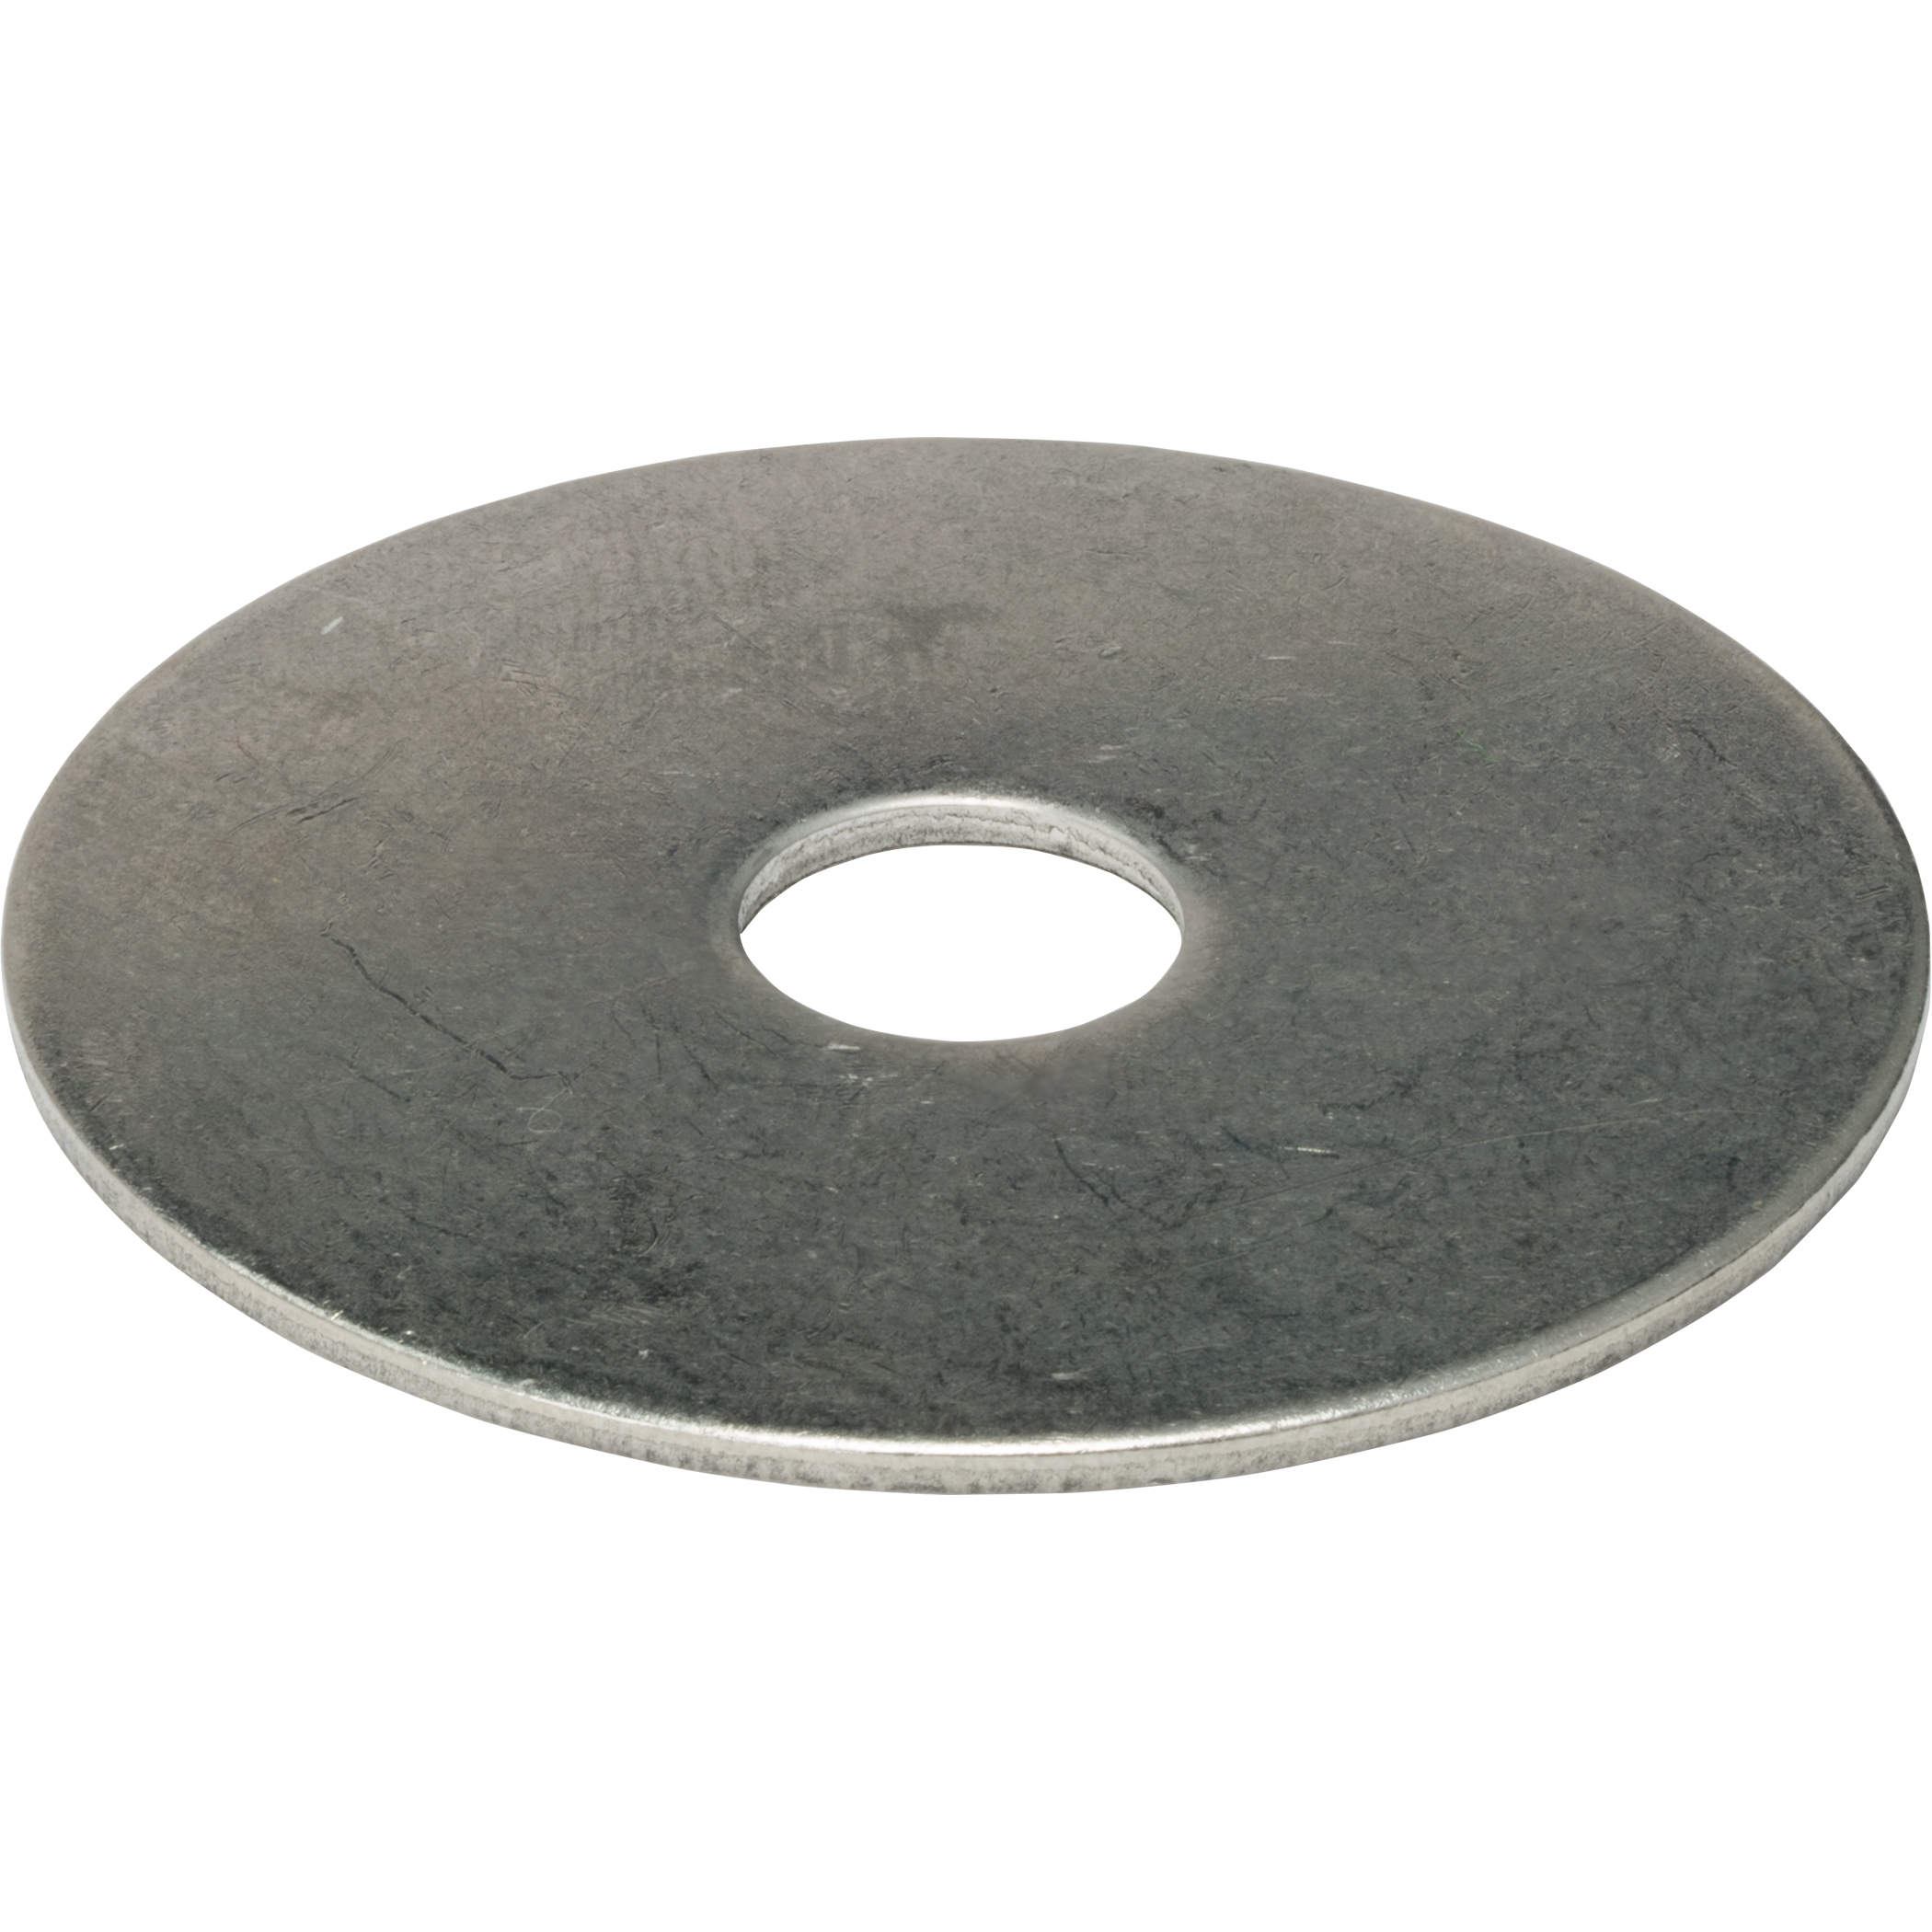 thumbnail 9 - Fender Washers Large Diameter Stainless Steel All Sizes Available in Listing